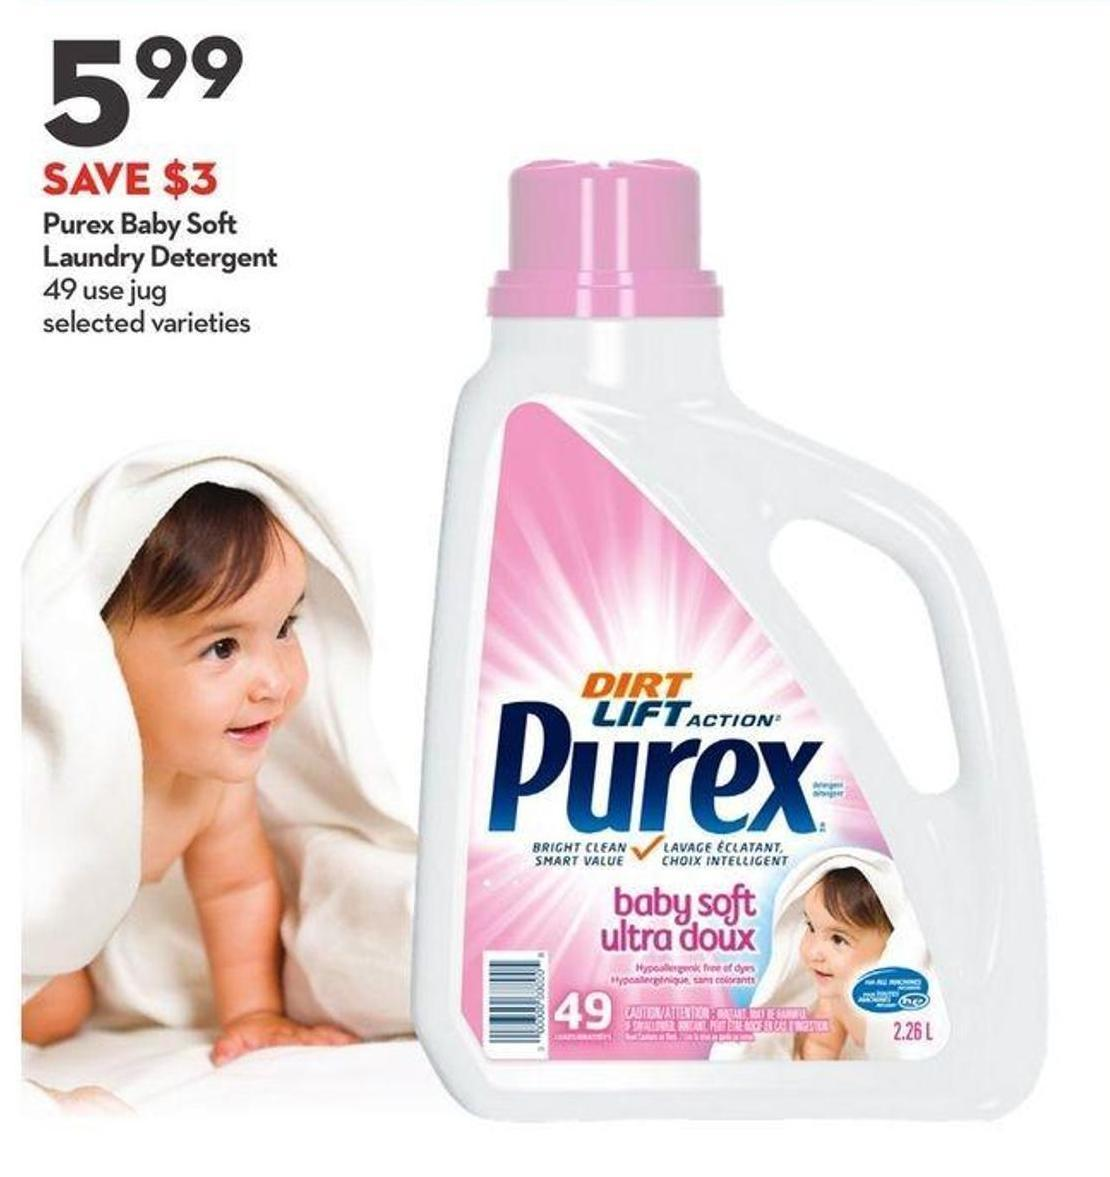 Purex Baby So Laundry Detergent